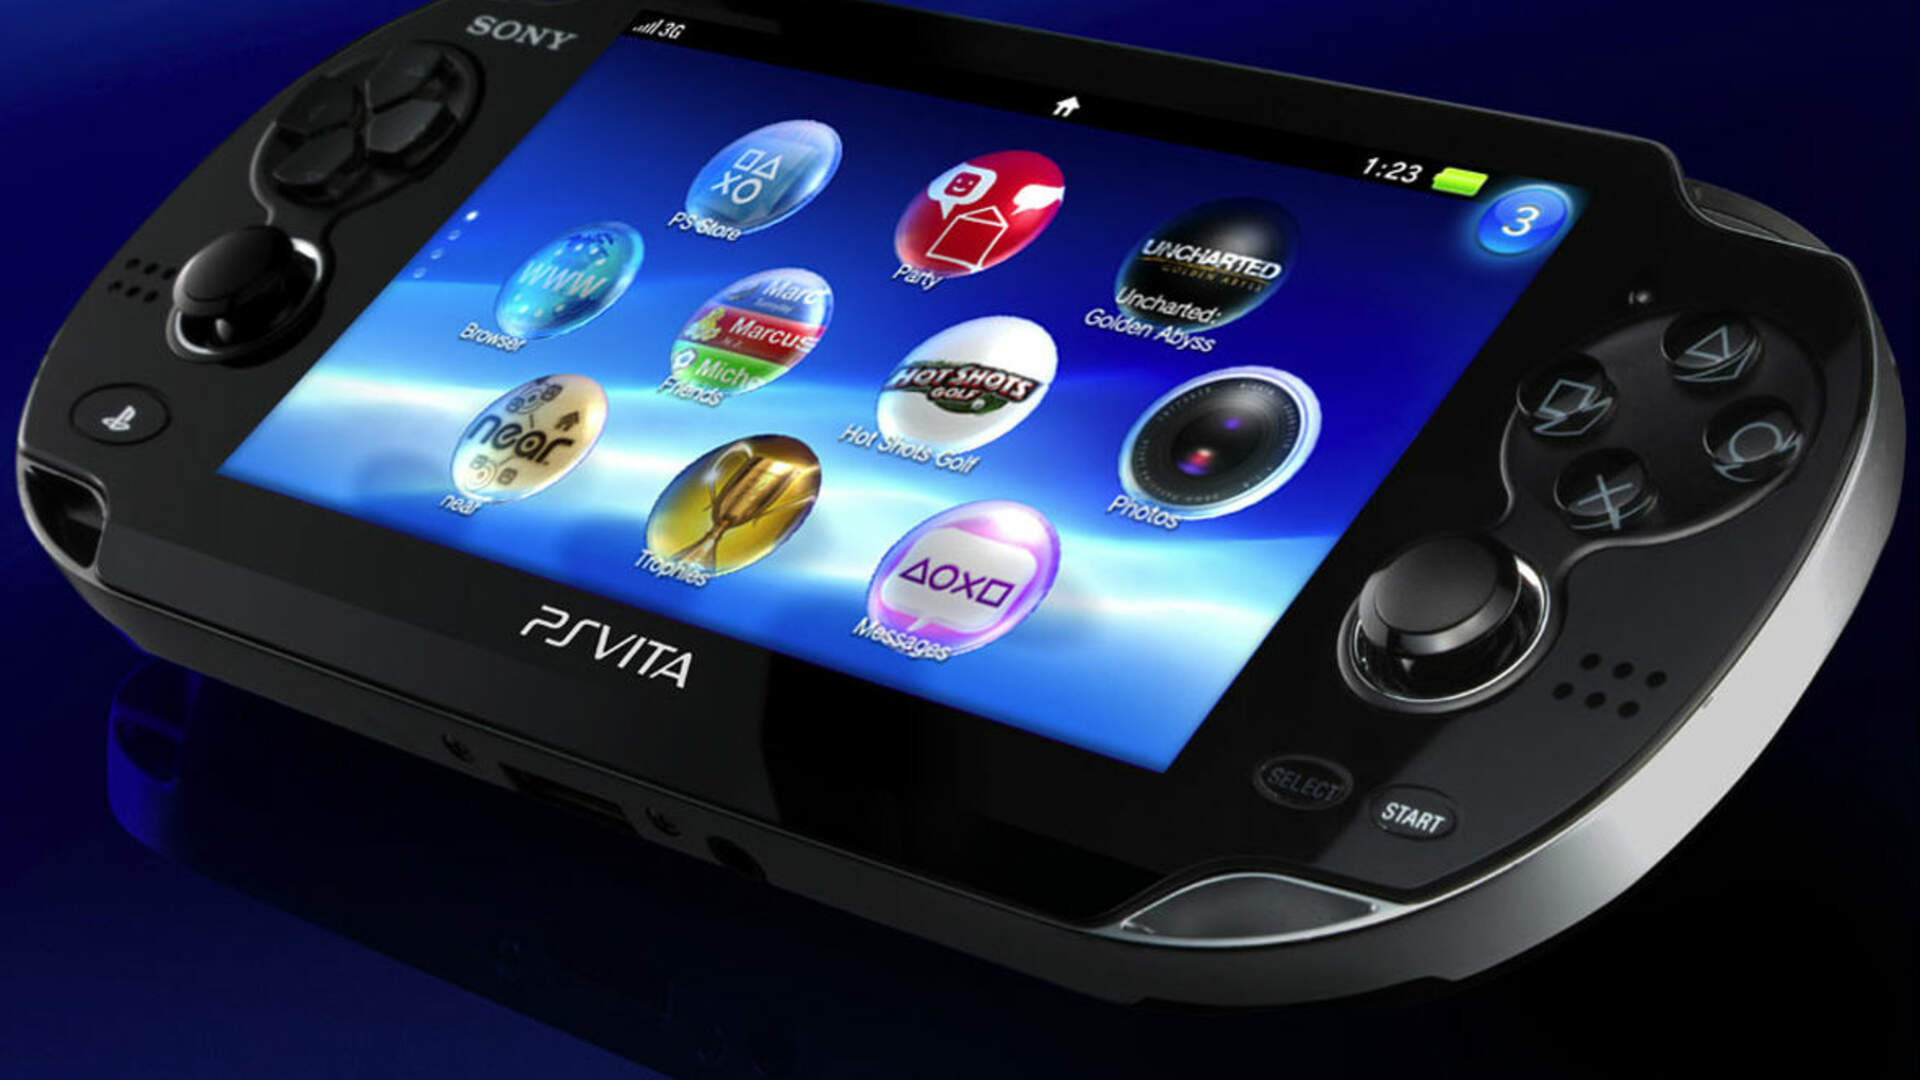 The PS Vita Officially Ends Production in Japan